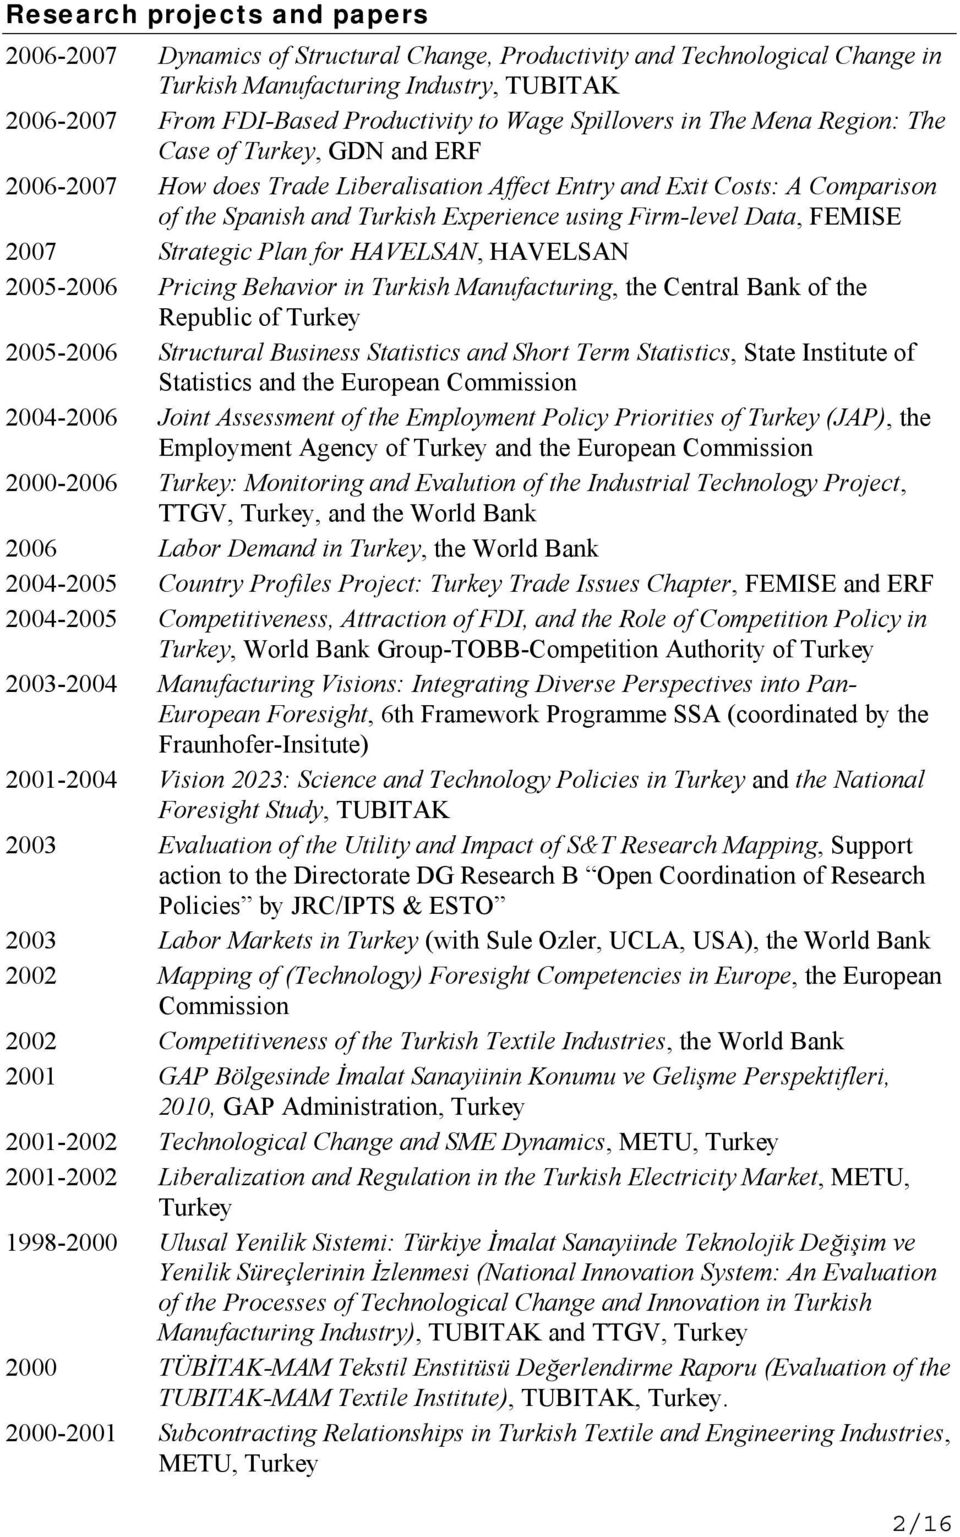 Data, FEMISE 2007 Strategic Plan for HAVELSAN, HAVELSAN 2005-2006 Pricing Behavior in Turkish Manufacturing, the Central Bank of the Republic of Turkey 2005-2006 Structural Business Statistics and